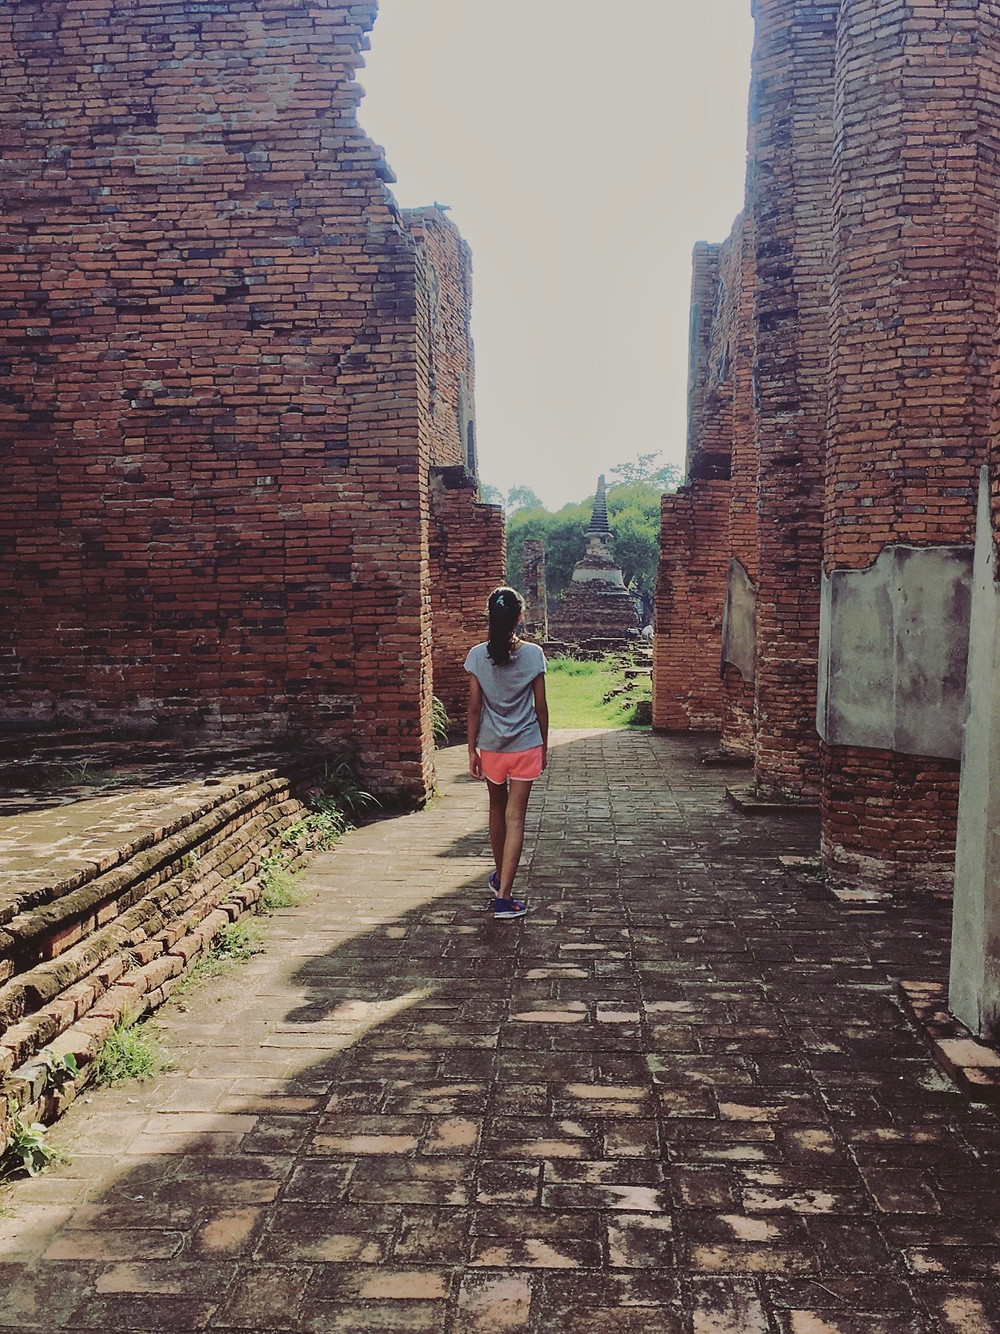 Eryn walking past brick wall ruins in the ancient city of Ayutthaya, Thailand